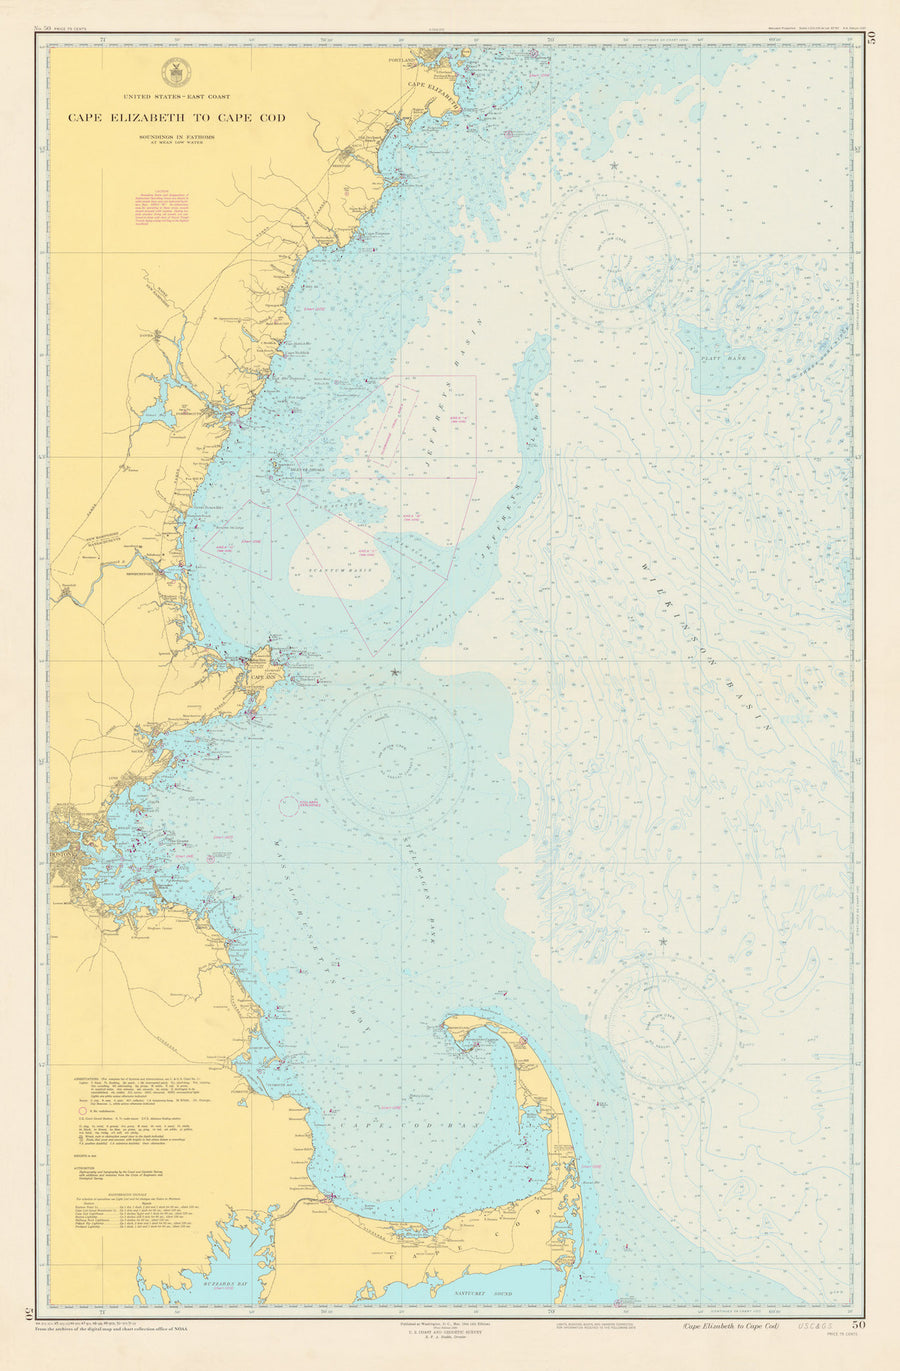 Cape Cod to Cape Elizabeth Map - 1951 (light blue)